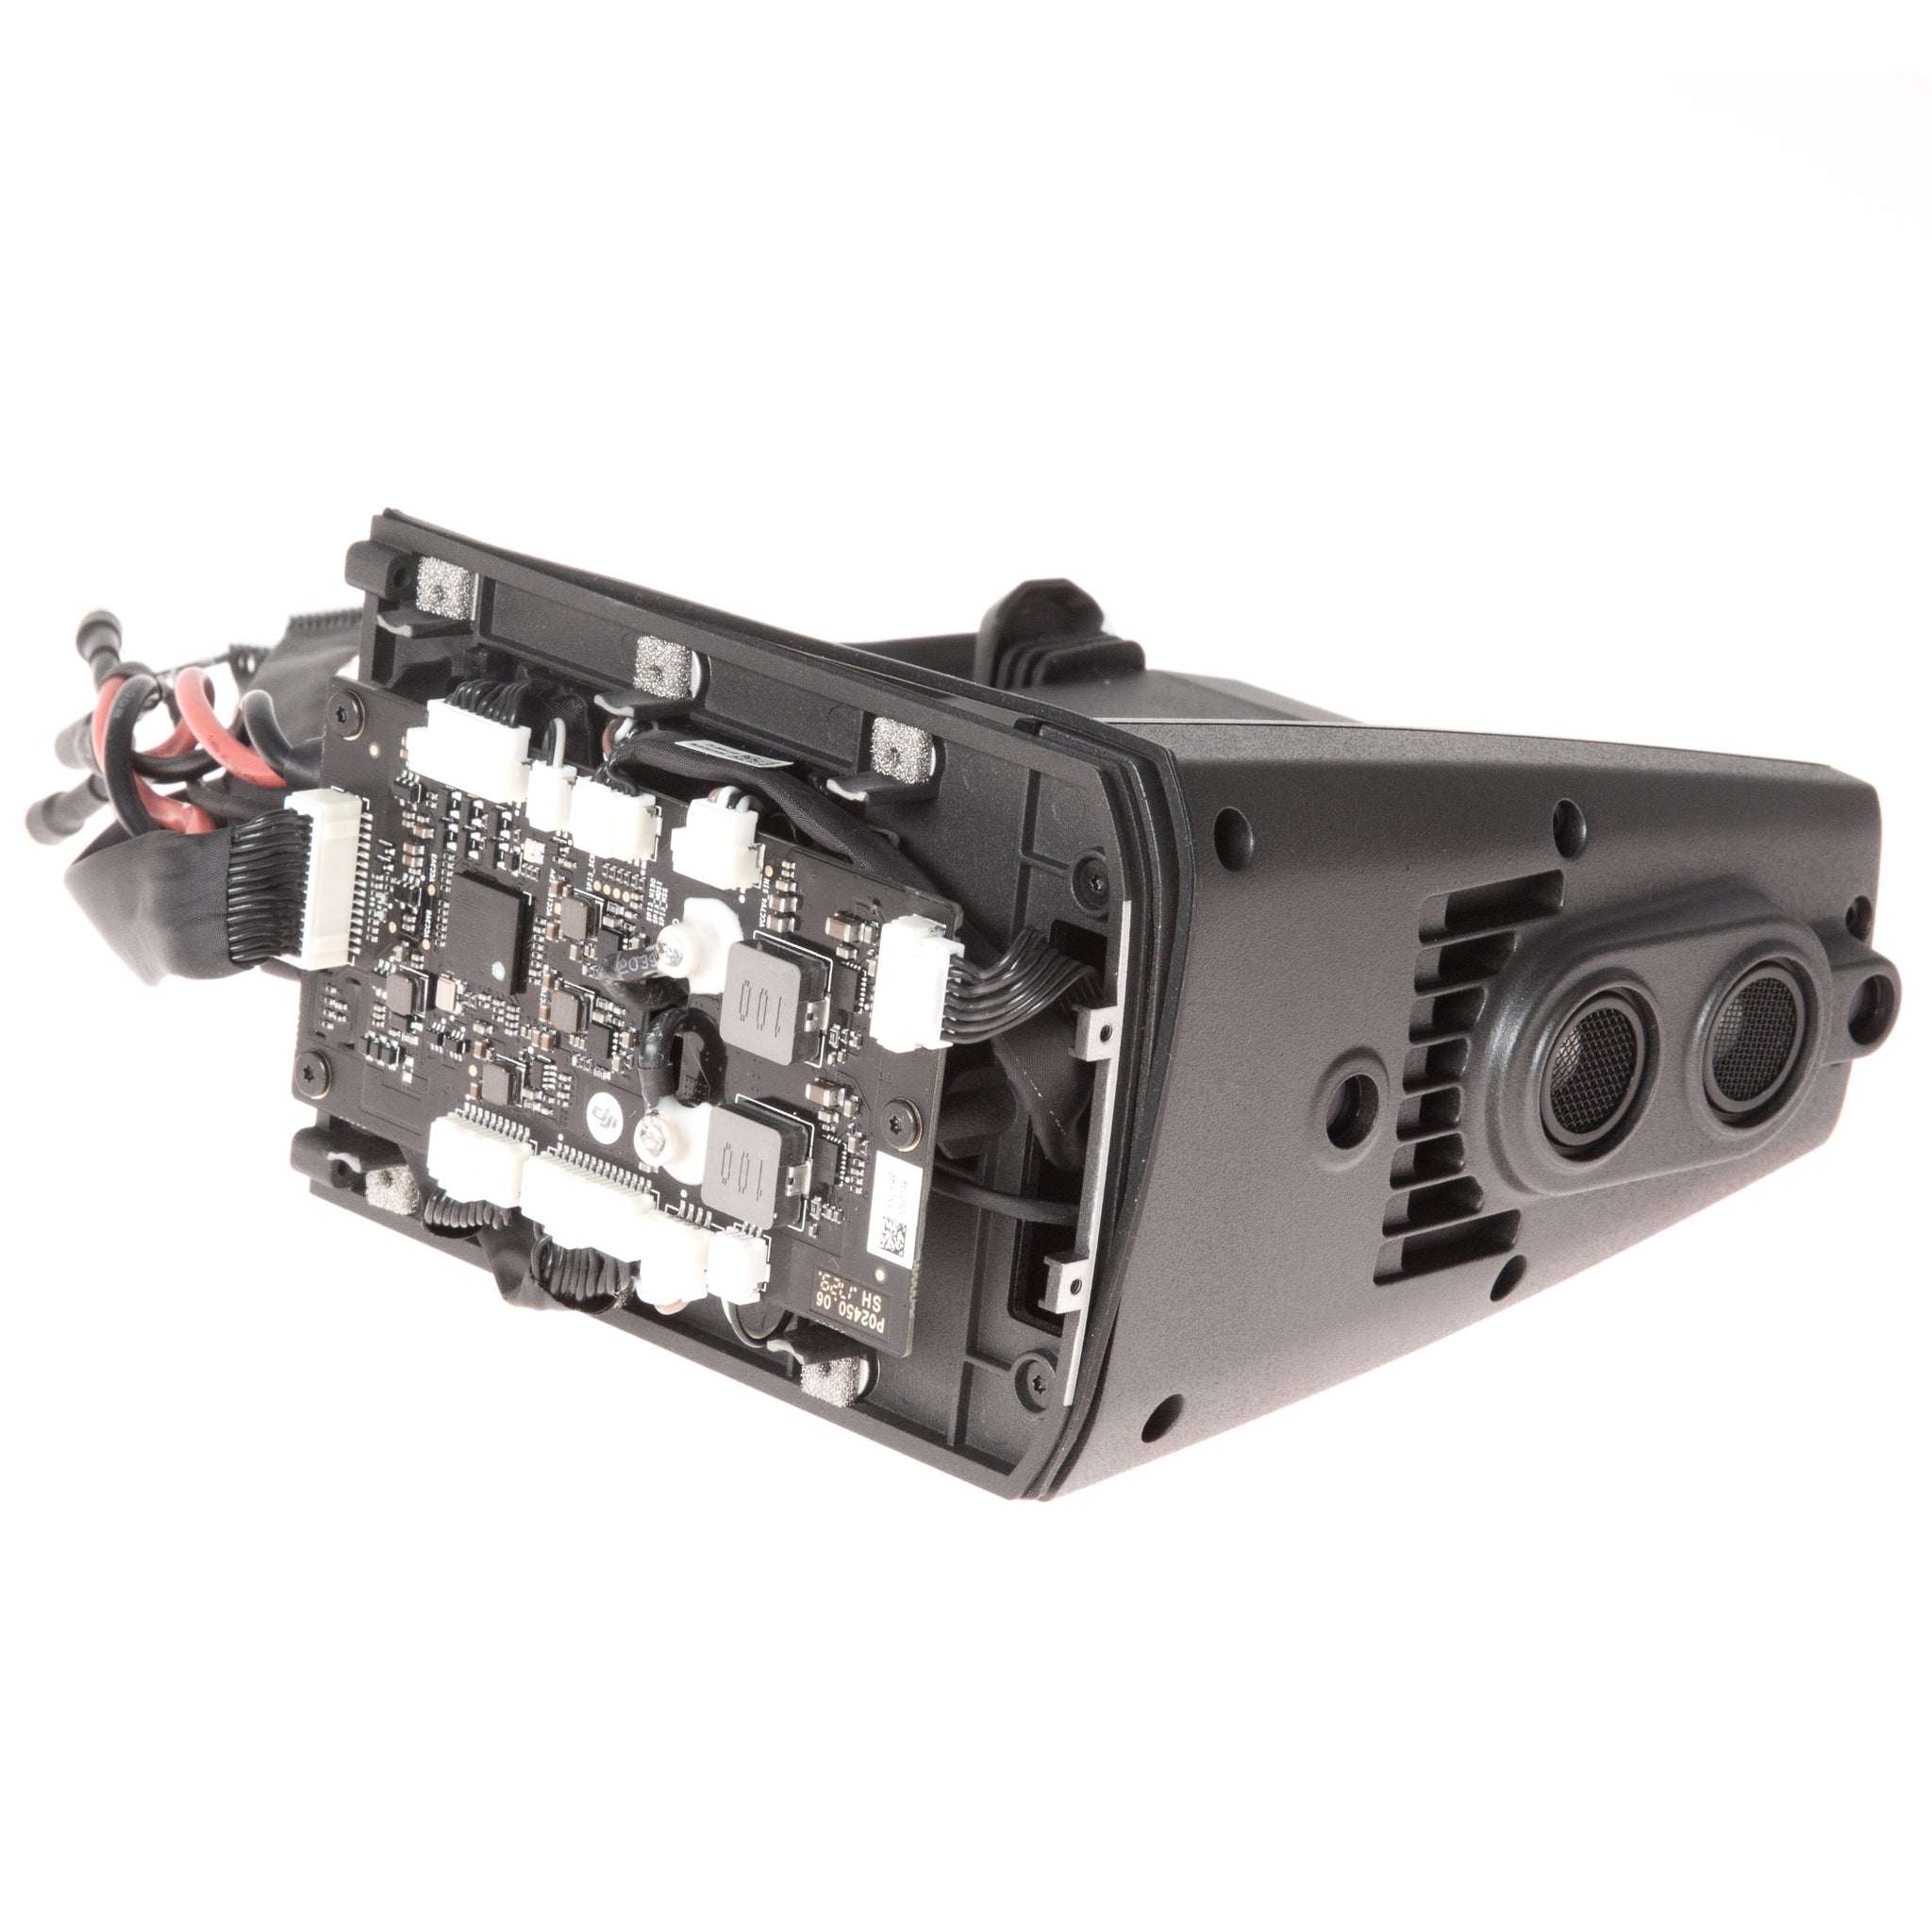 DJI Matrice 200 - Battery Compartment